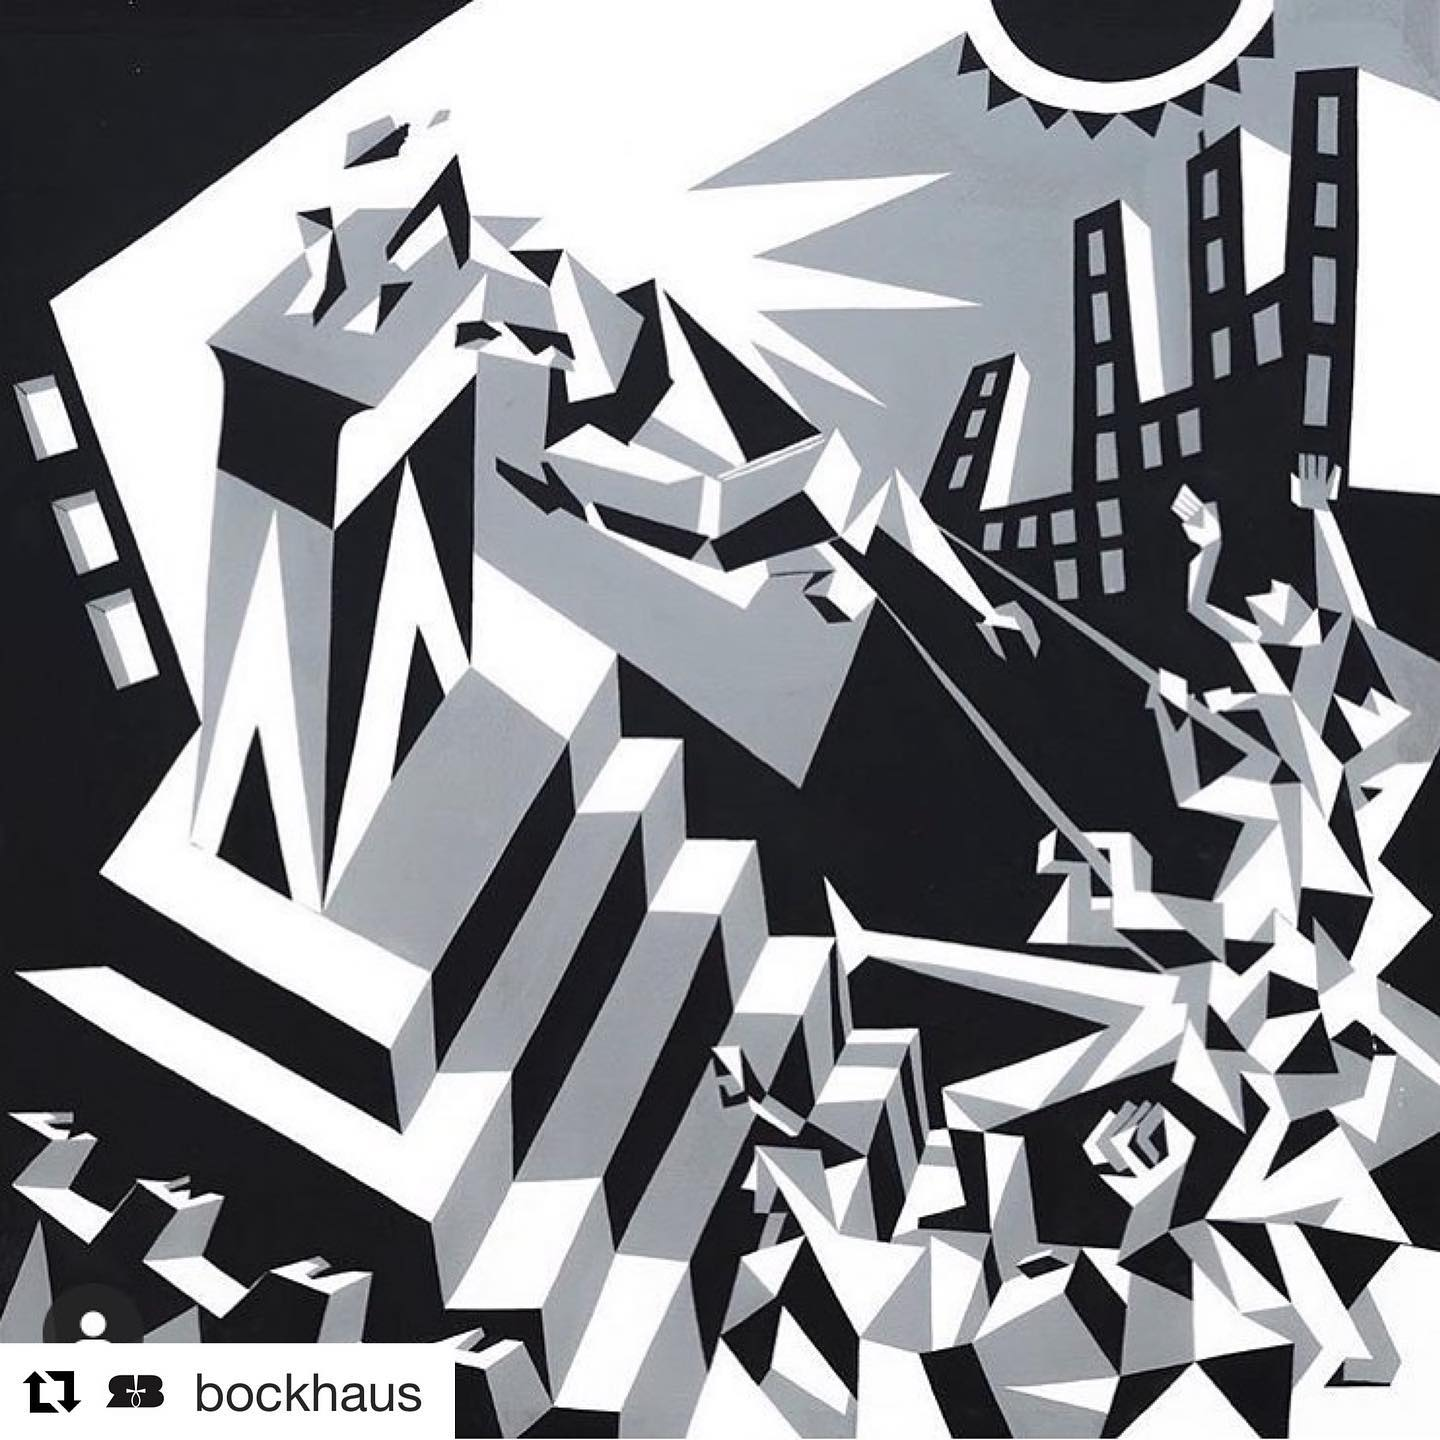 Ryan Bock's powerful images capture this moment in time and to his credit what started years ago.   @bockhaus  ・・・ 'Pulling down the Monument' 2018 via @ground.effect . . .